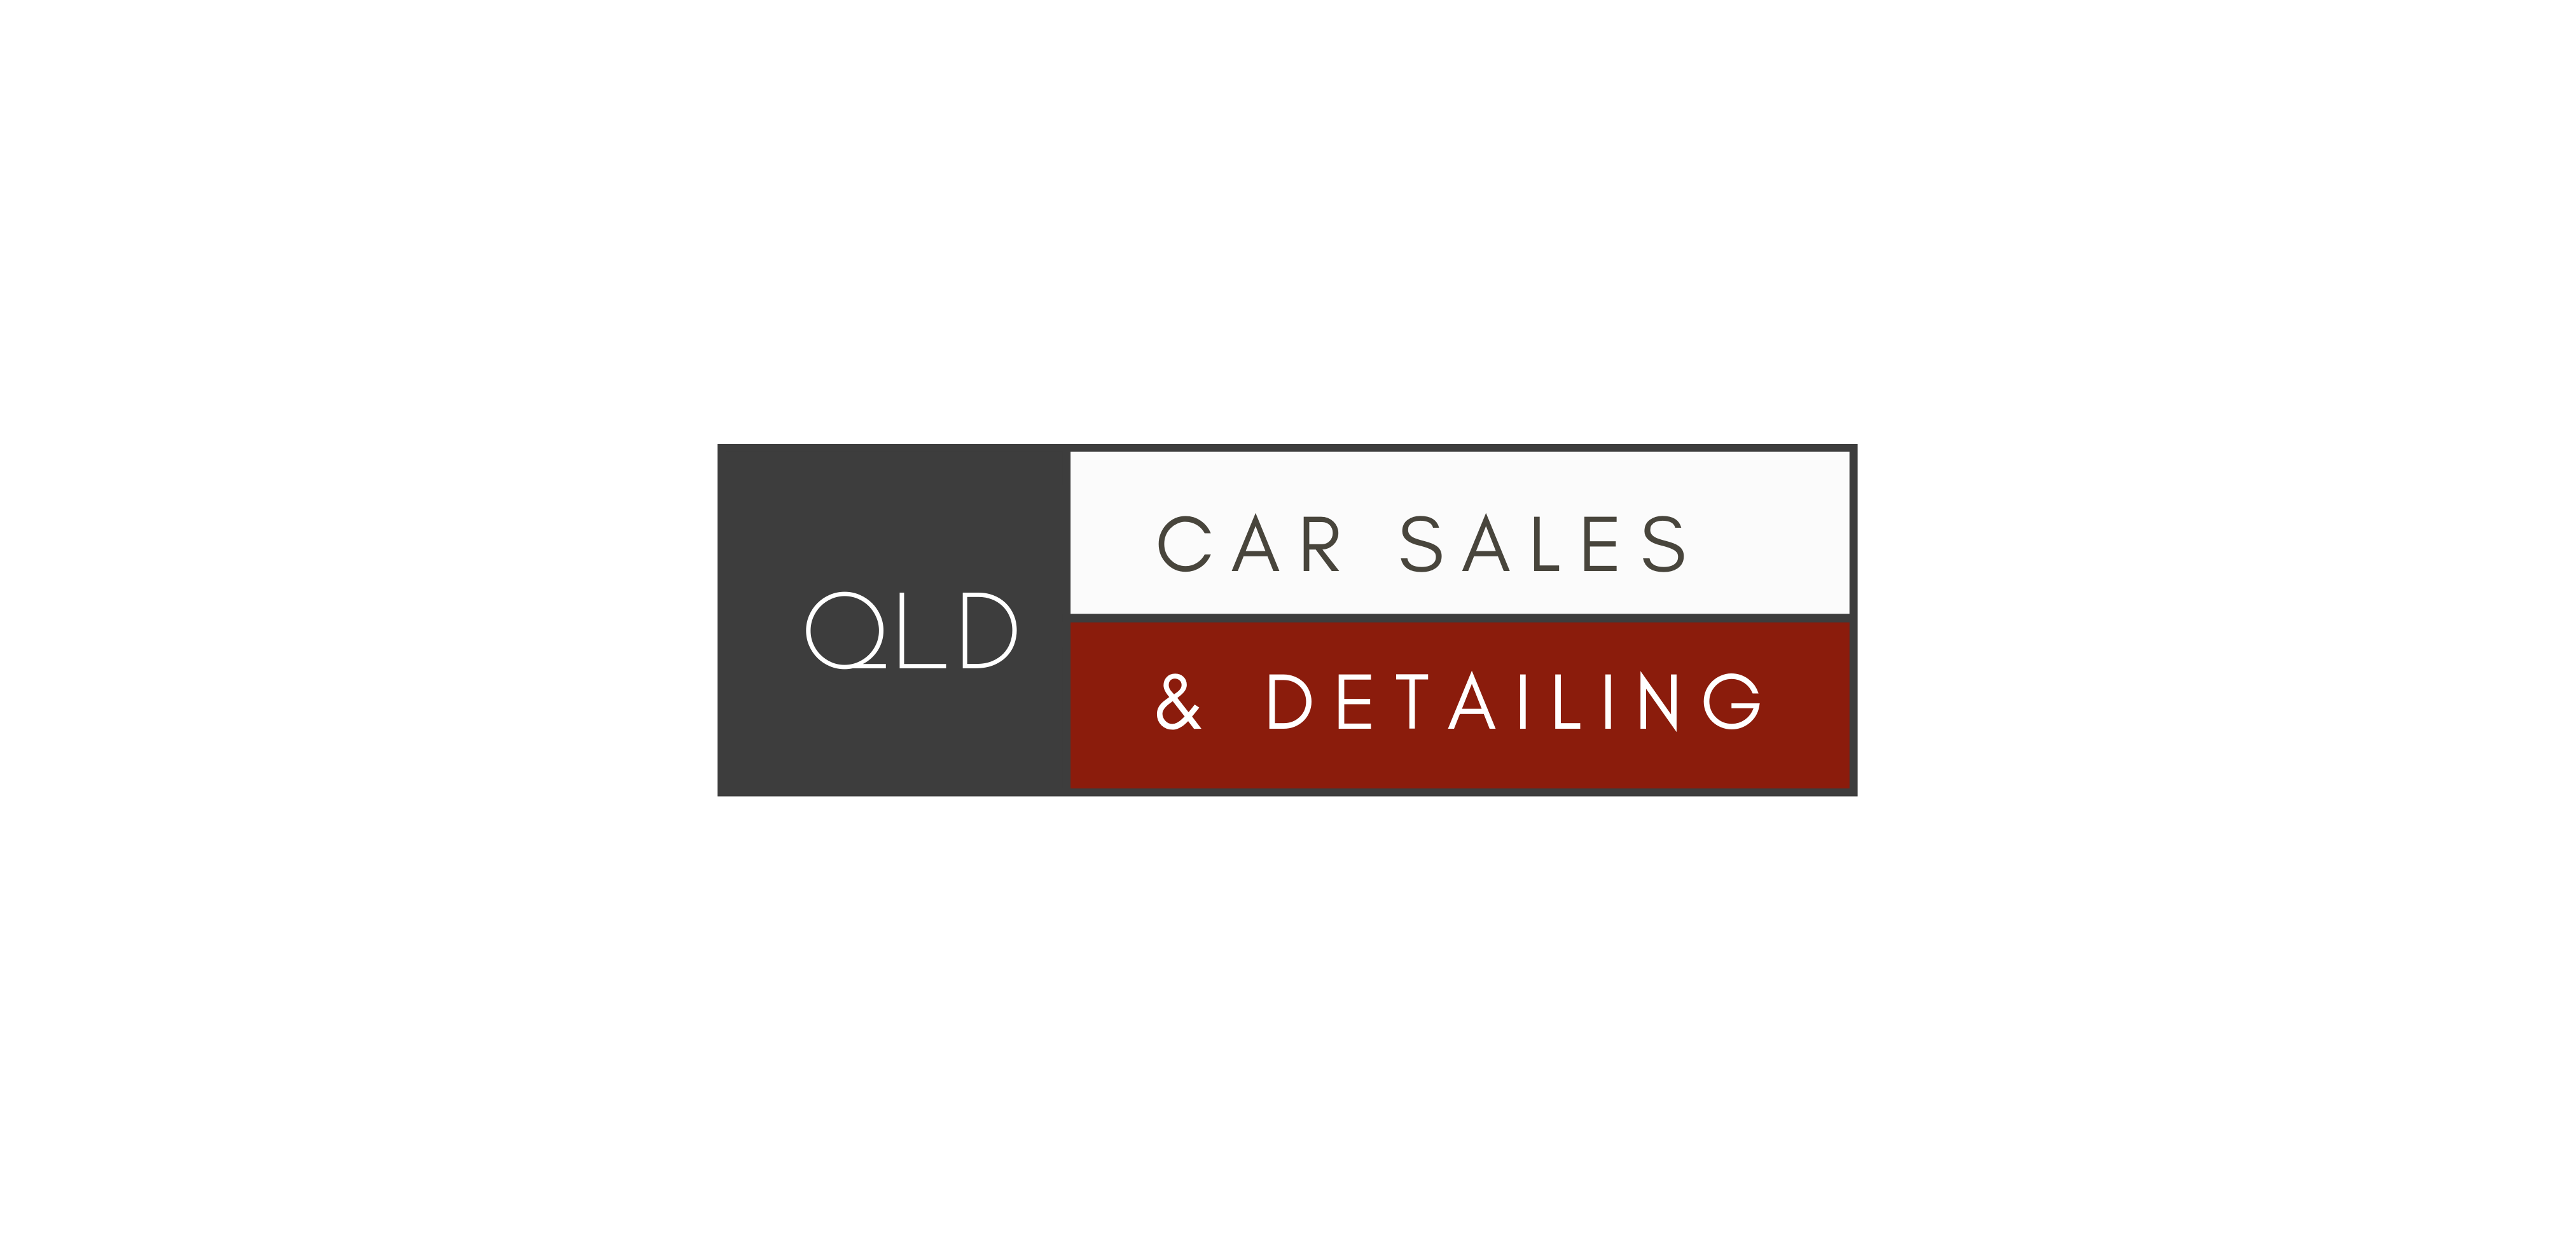 Qld Car Sales and Detailing